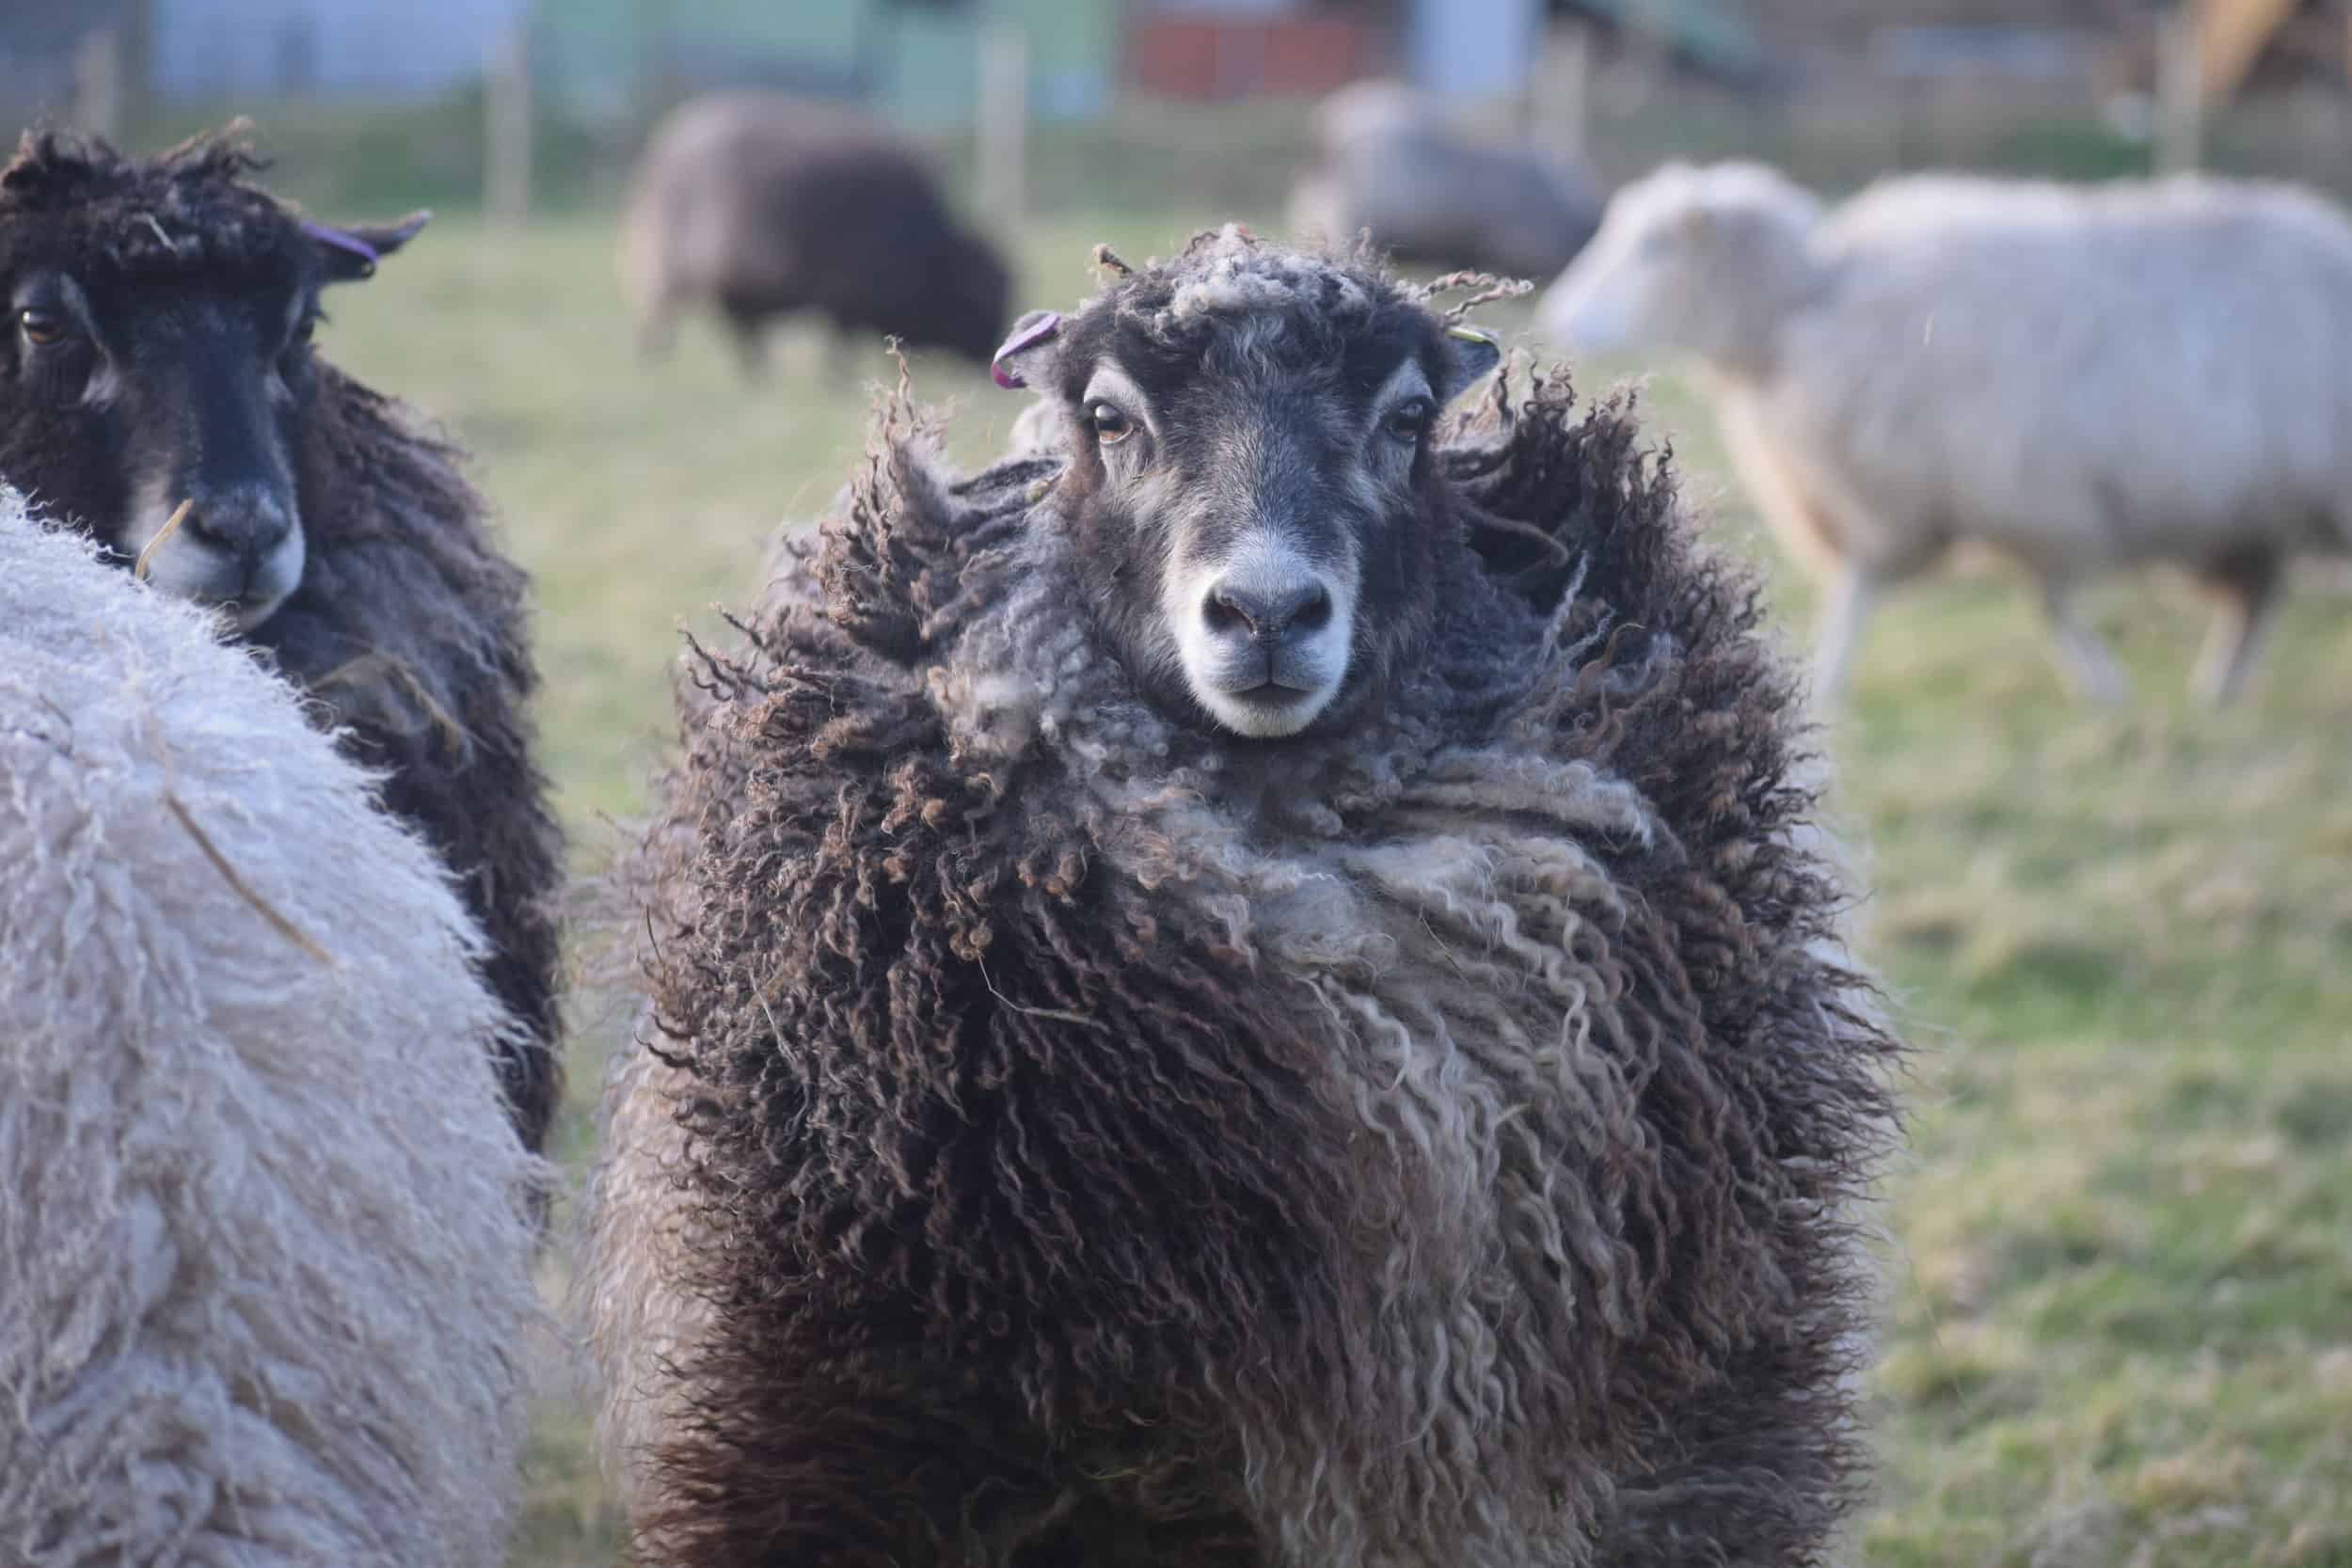 Jemima sheep farm animals coloured leicester longwool gotland sheep shetland ewe lamb kind fibre british wool grey amazing fleeces diva